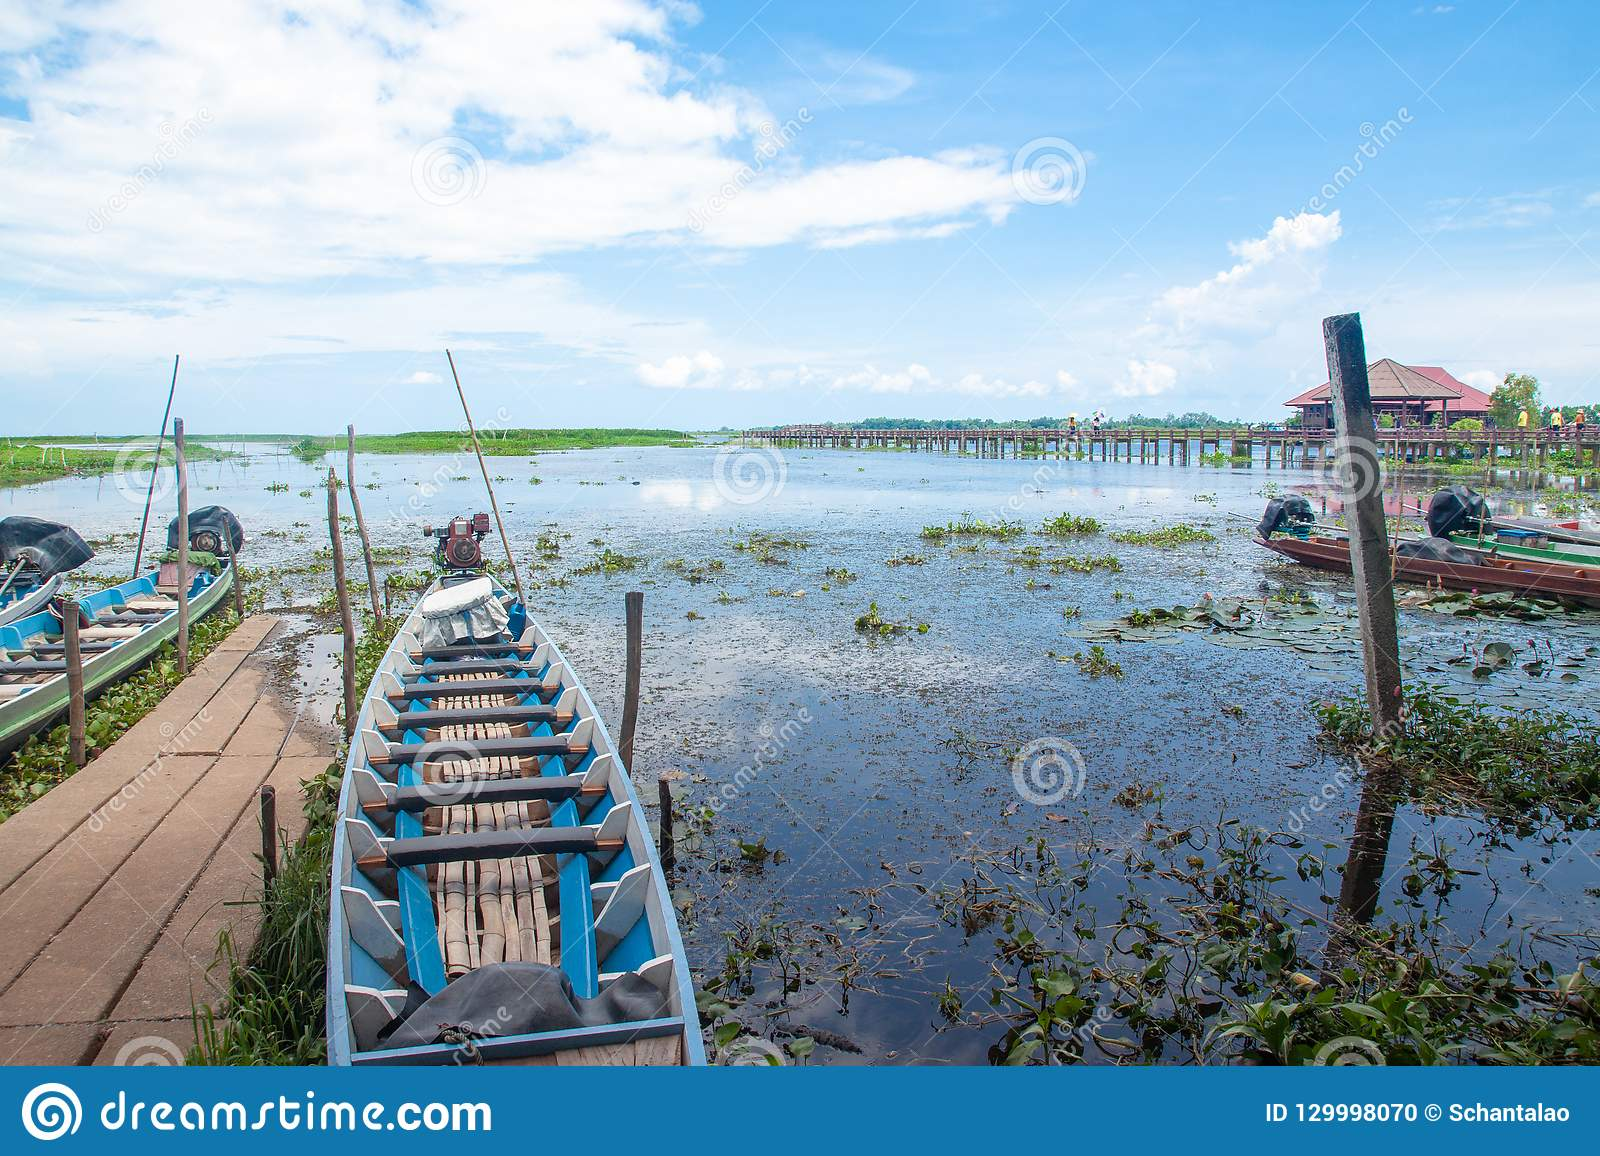 PHATTHALUNG, THAILAND : October 13, 2018 - Thale-Noi is a nation